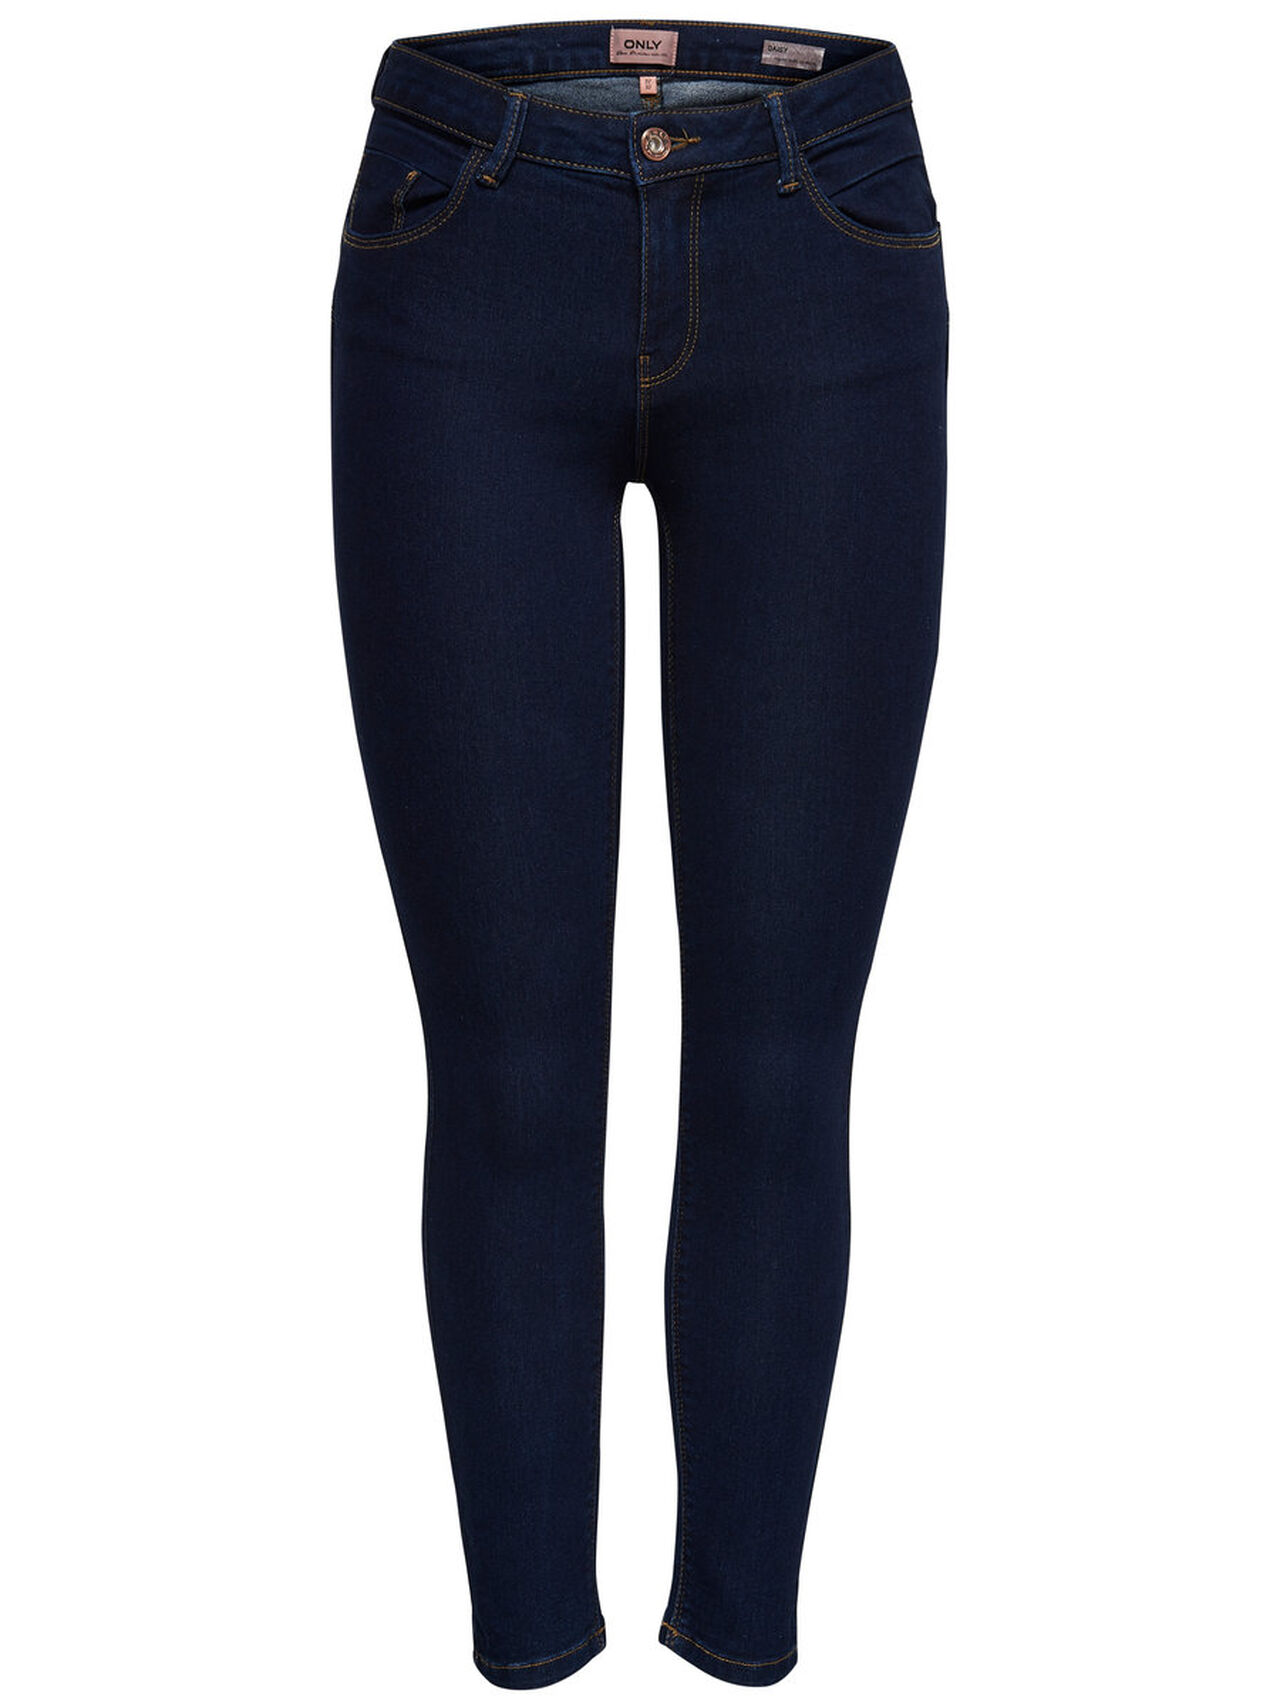 ONLY Daisy Reg Push Up Ankle Skinny Fit Jeans Women Blue